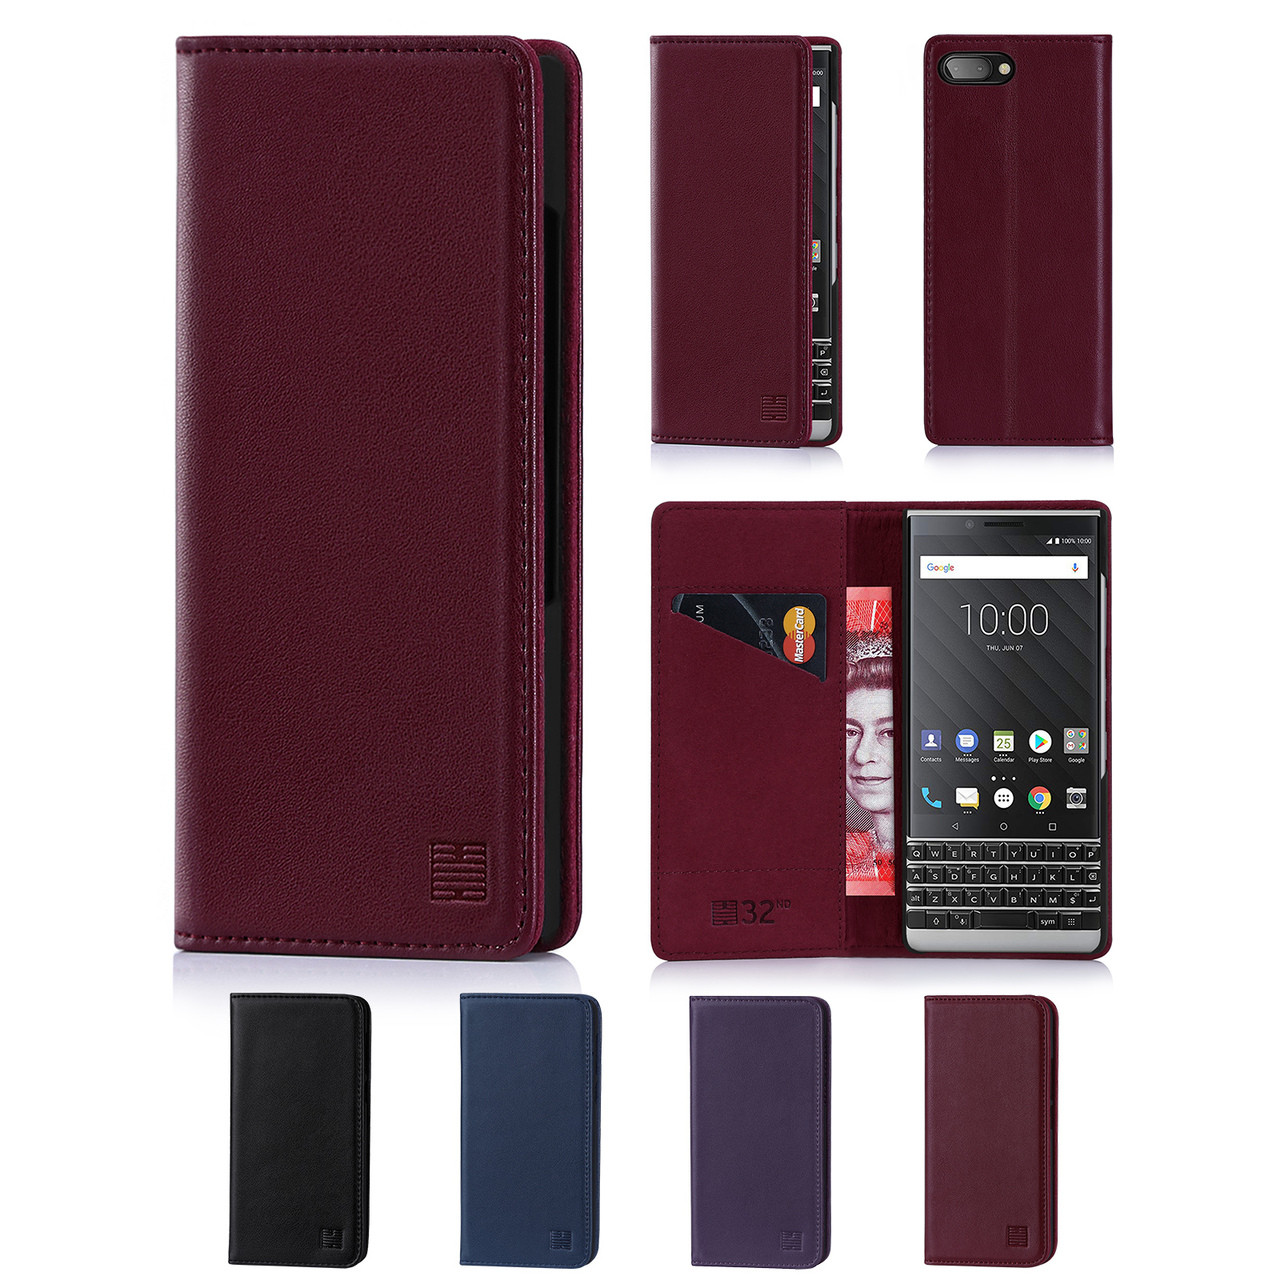 promo code a4dd0 49323 BlackBerry Key2 Classic Real Leather Book Wallet Case